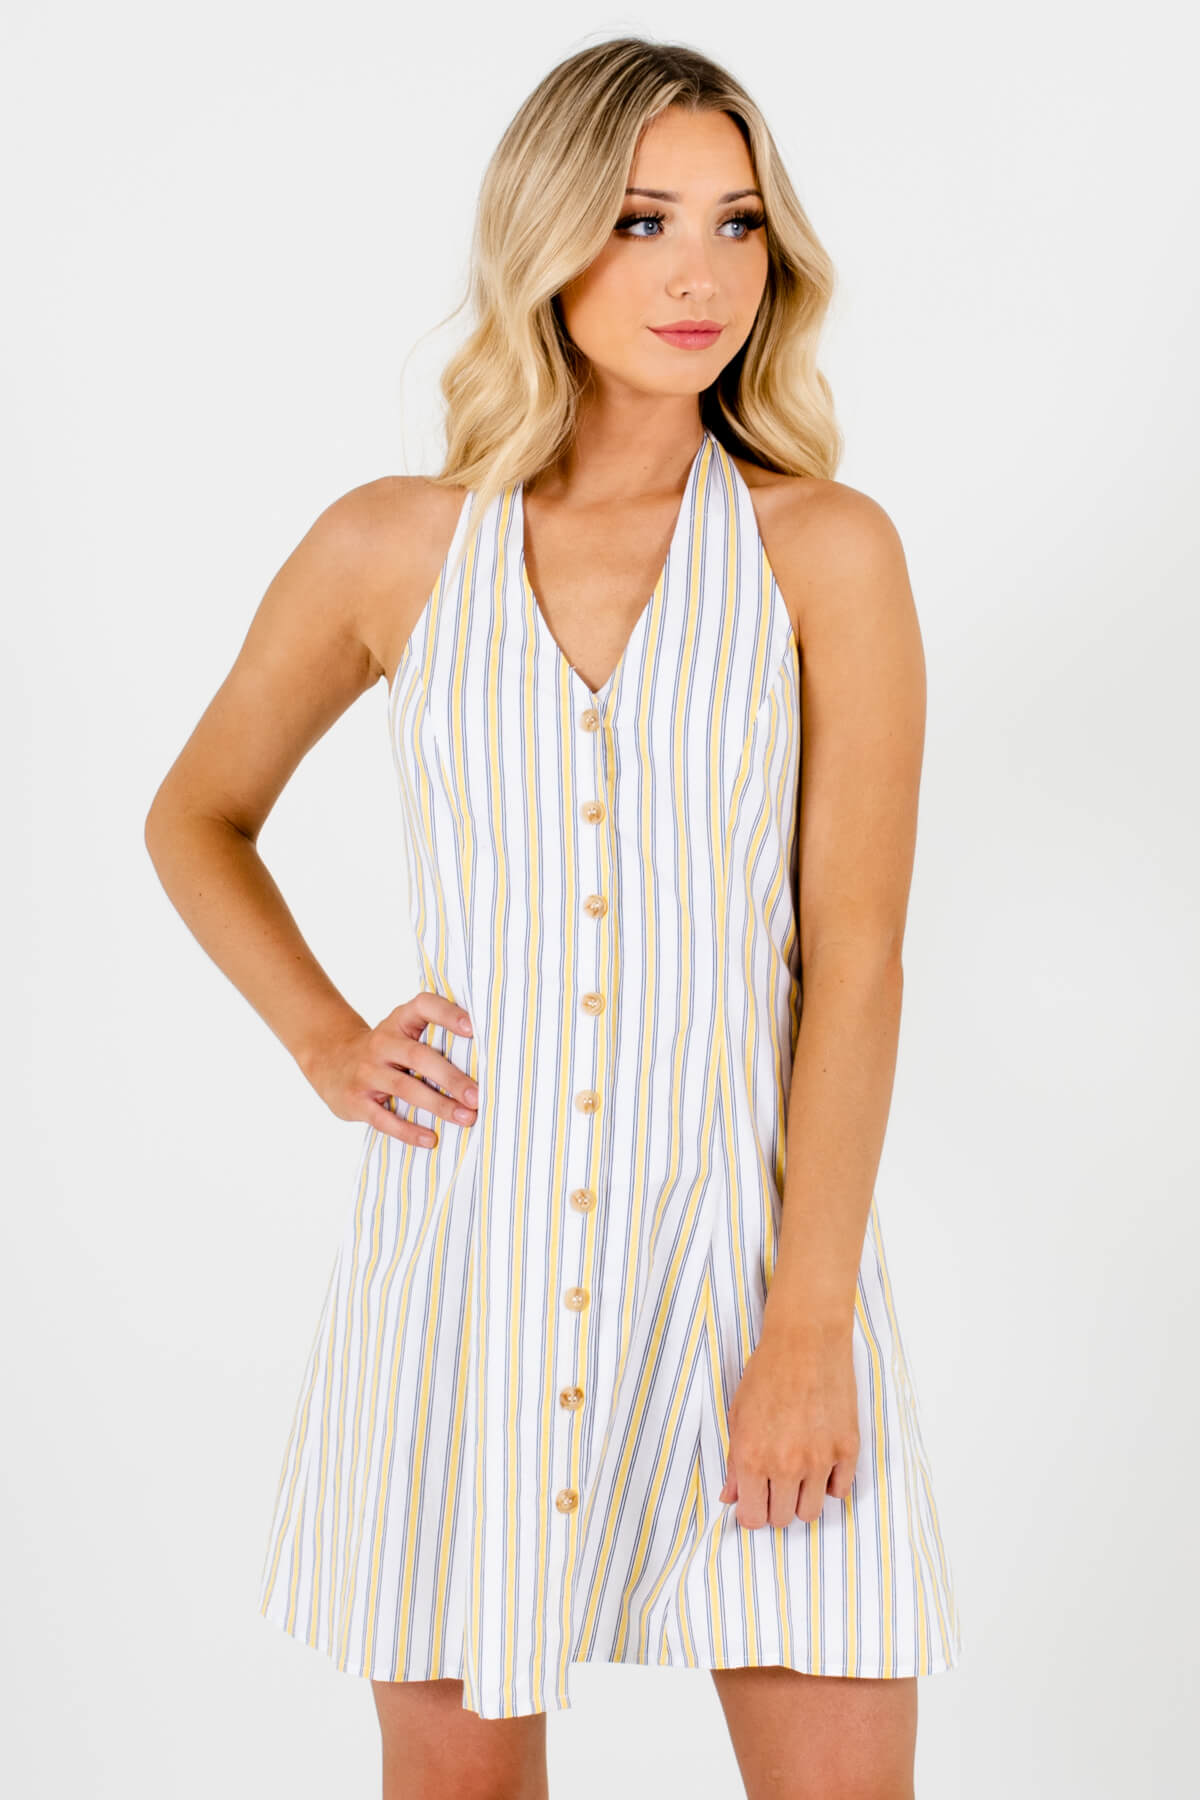 White Yellow and Blue Striped Patterned Boutique Mini Dresses for Women